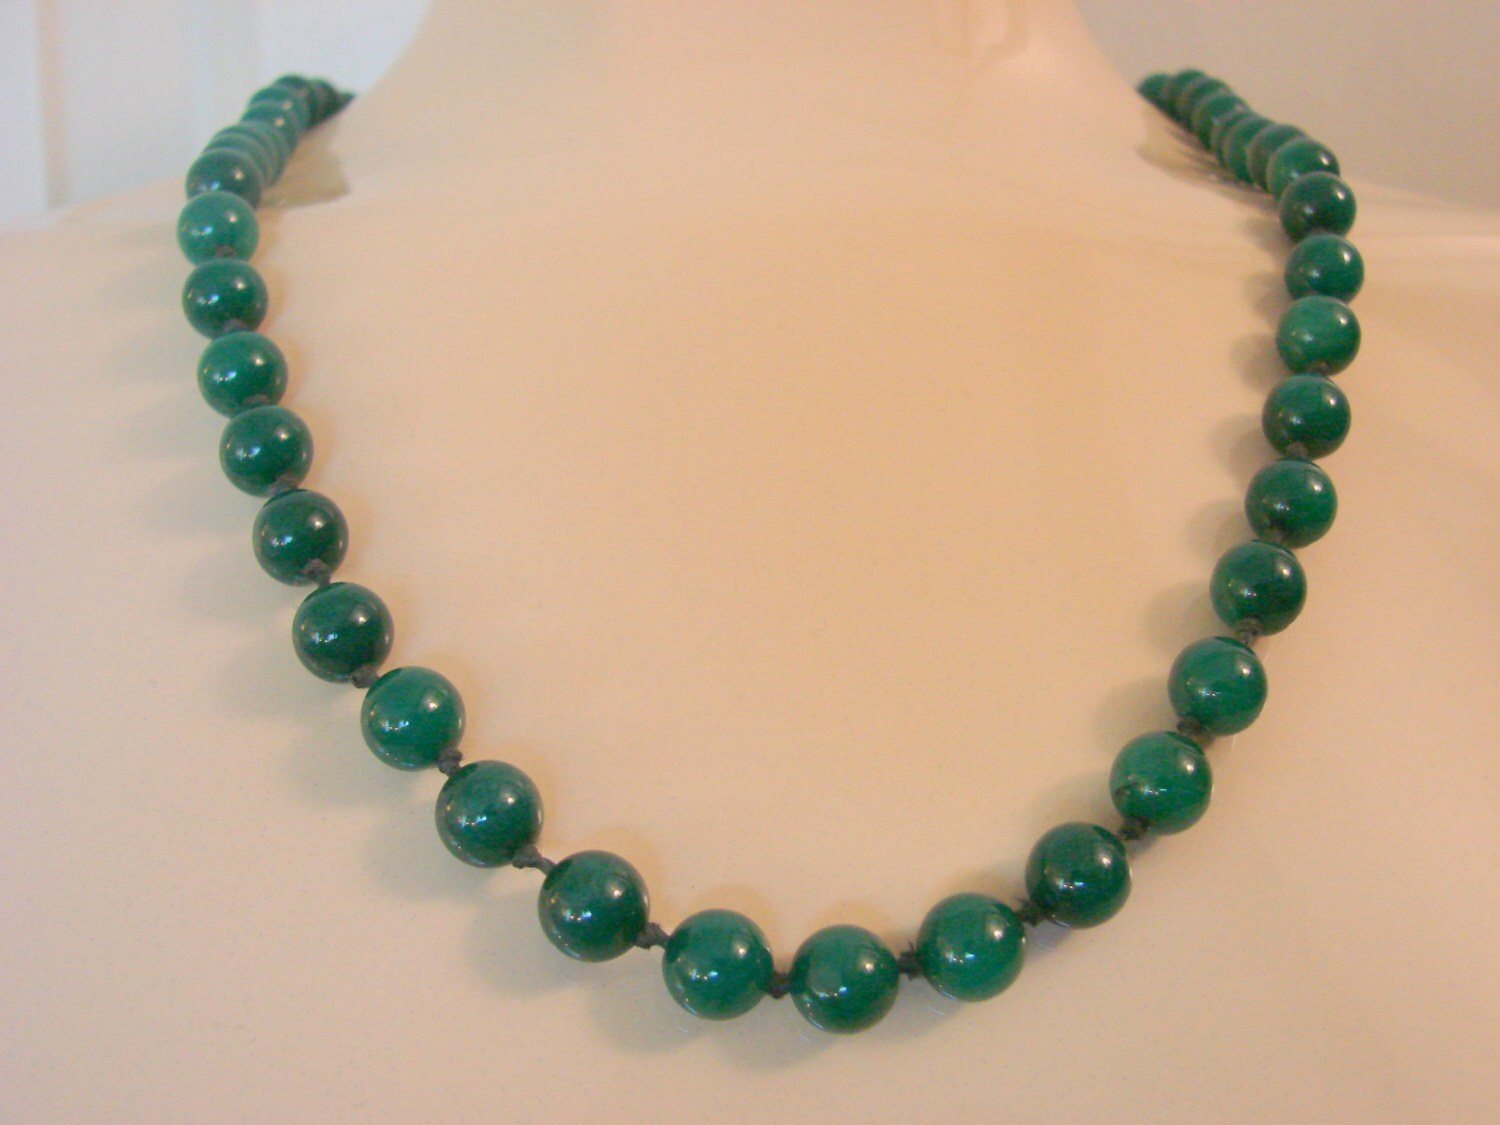 Vintage Genuine Spinach Jade Bead Necklace Rich Color. Cheap Gold Bracelet. Anklet Sizes. Octagon Bracelet. Rubber Wedding Rings. Aqua Marine Necklace. Real Silver Chains. Watch Brand Watches. Wide Band Wedding Rings For Her